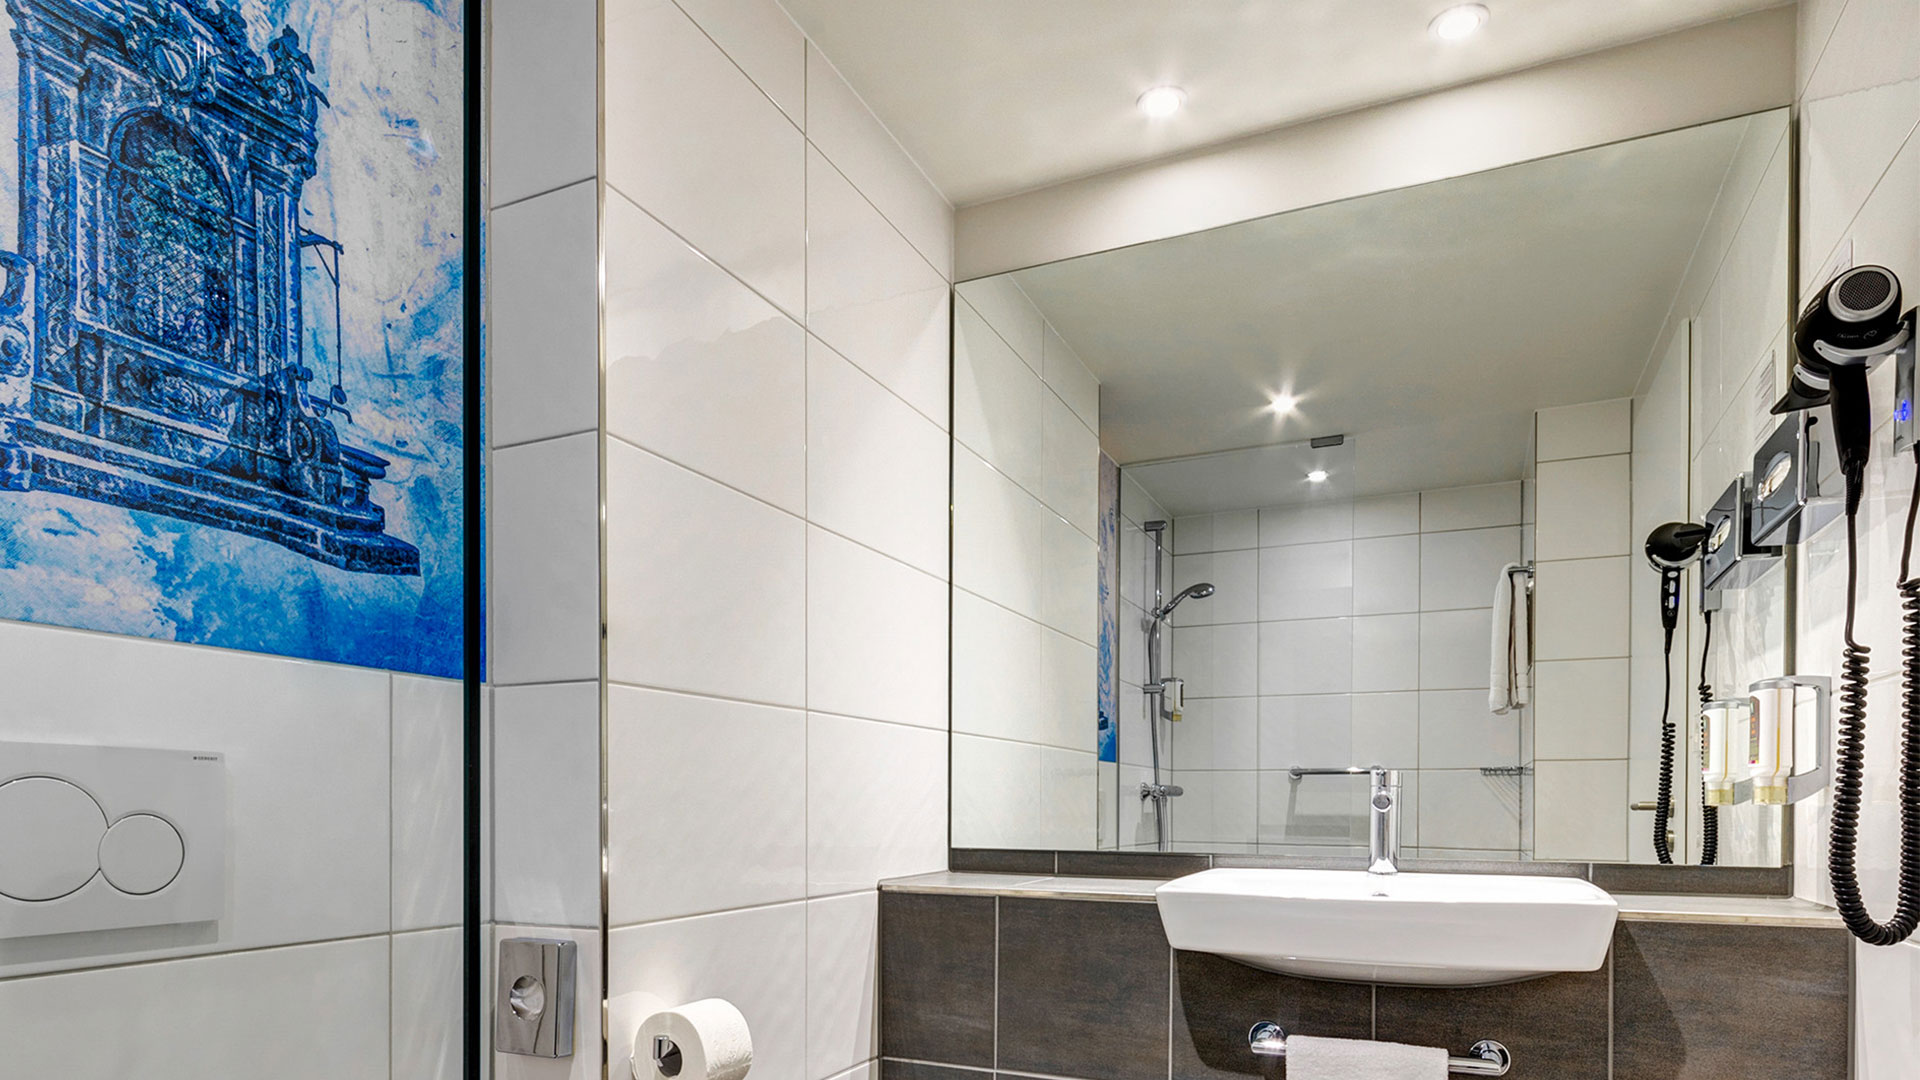 Photo of a bathroom - ibis Styles Rastatt Baden-Baden